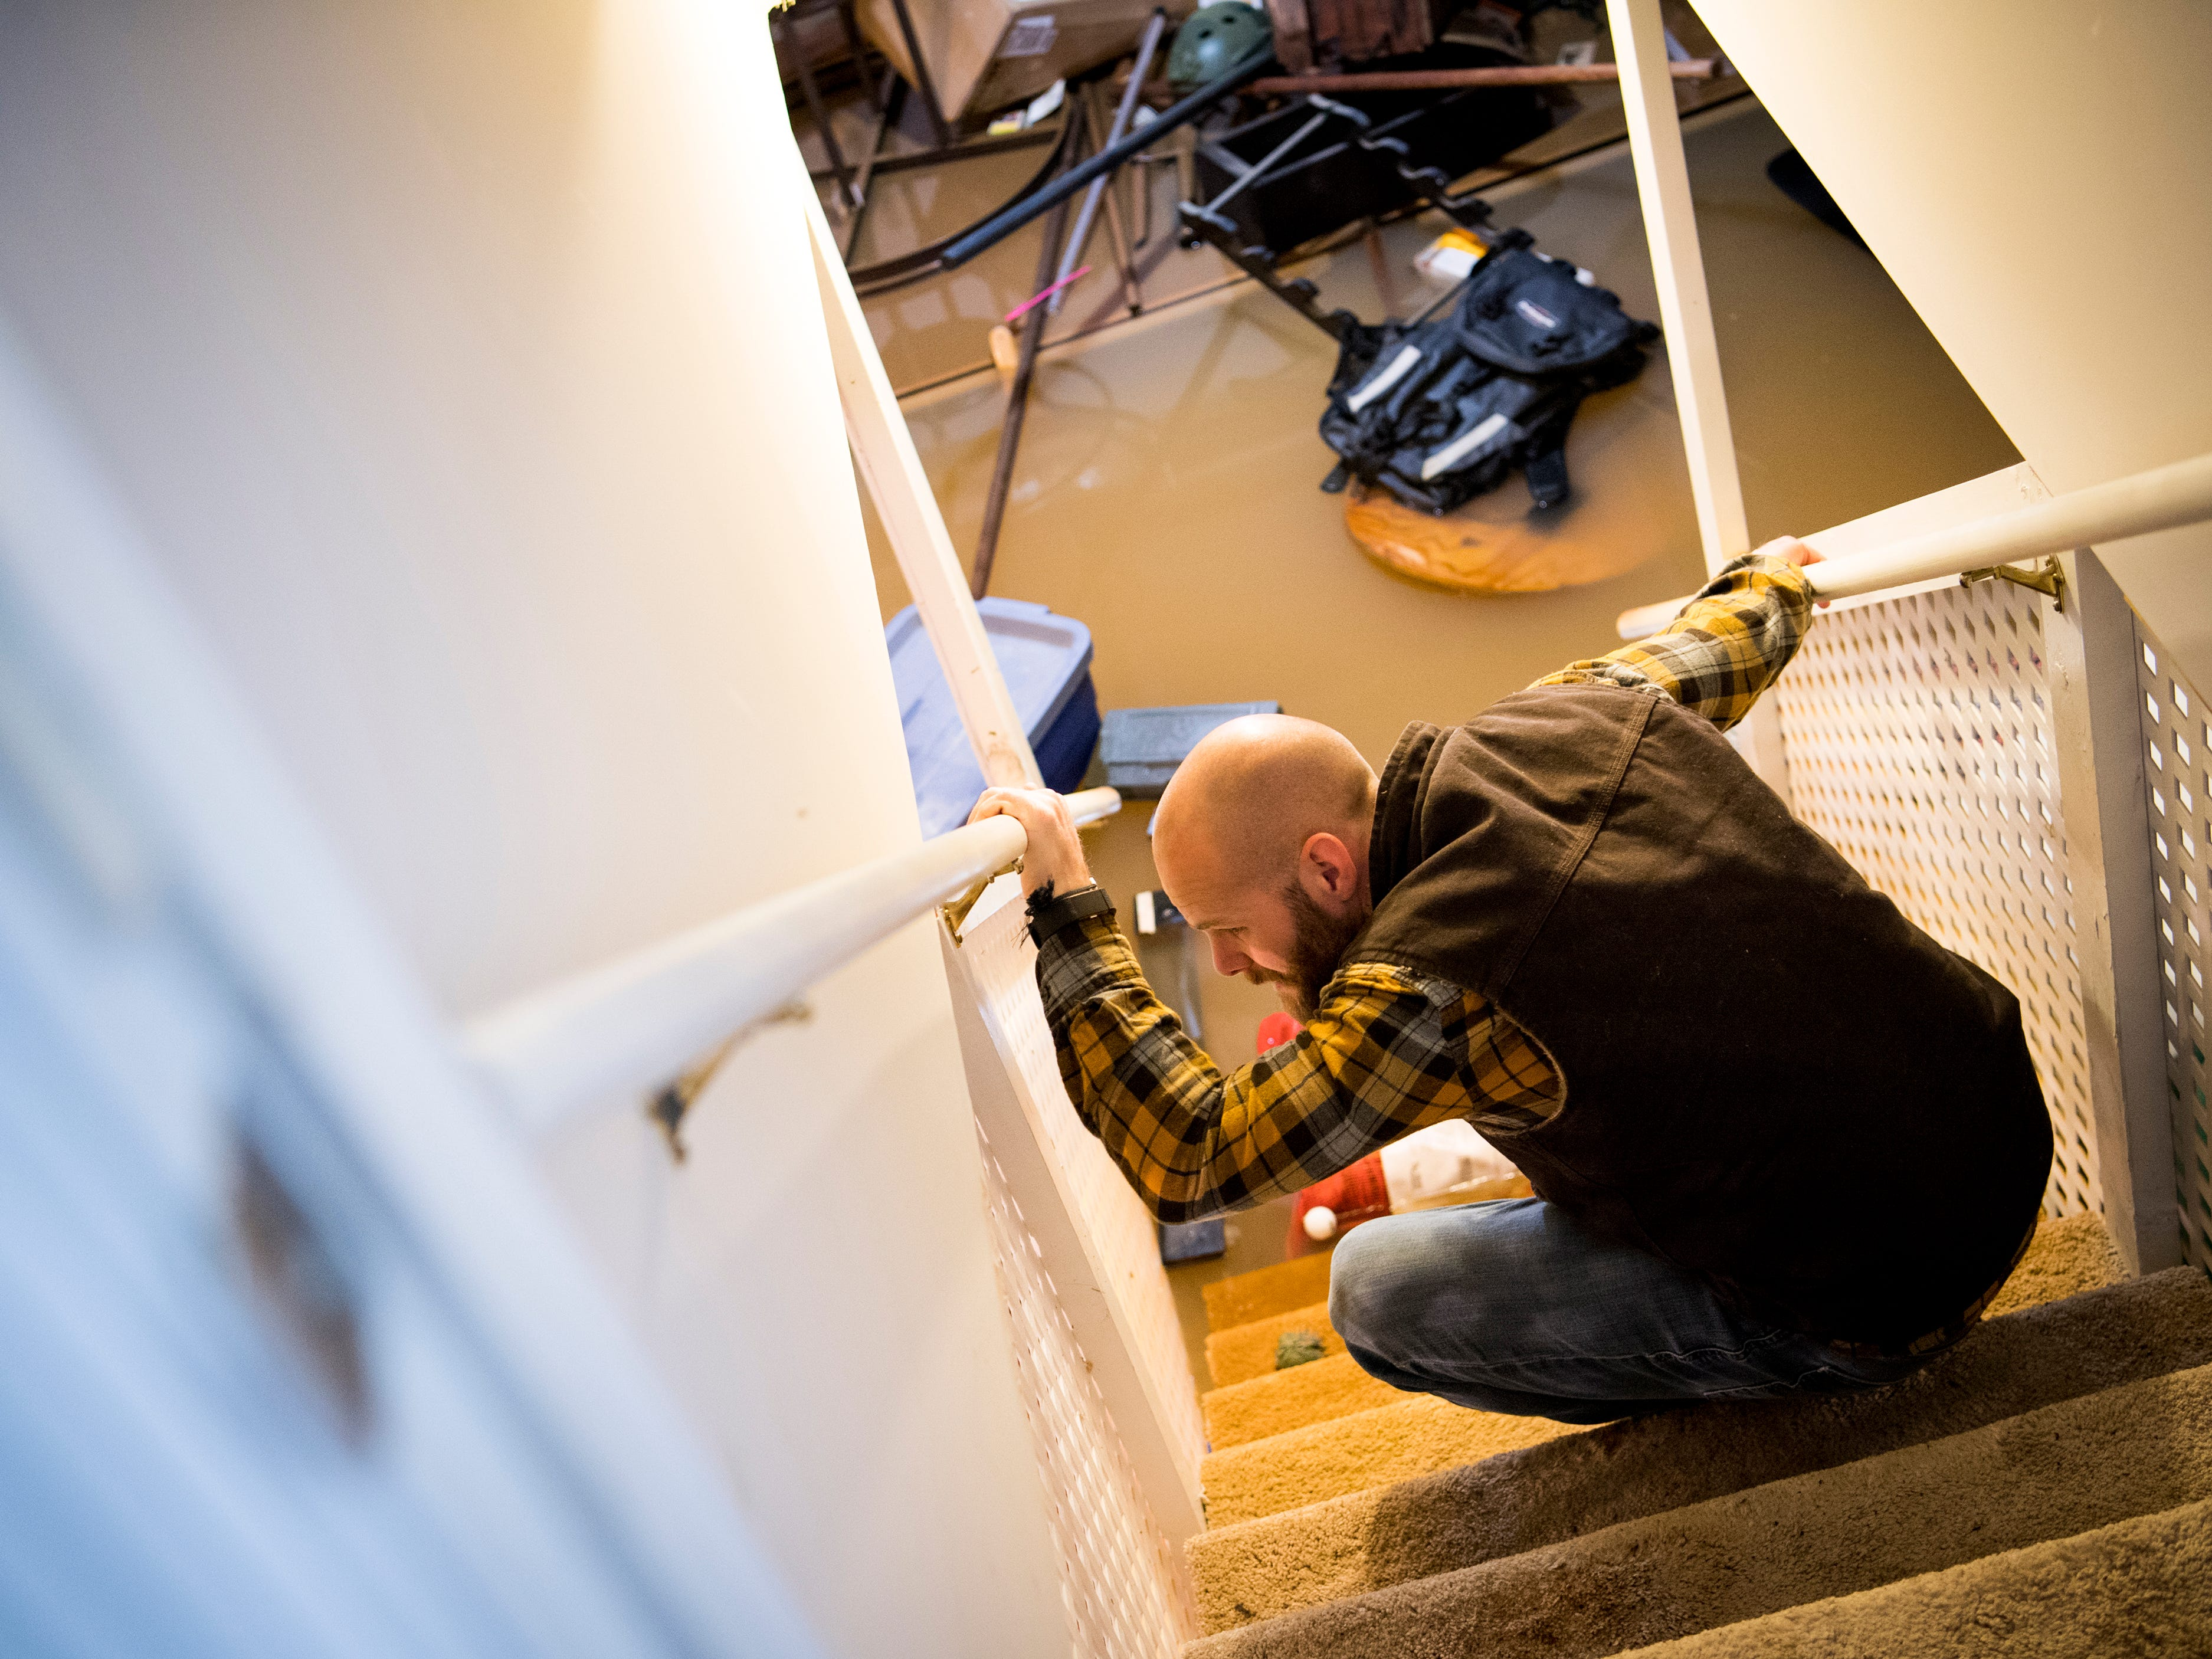 Jeff Macklin crouches down to look at his flooded basement on Monday, February 25, 2019. Macklin lives in the Lennox Place subdivision off of Ebenezer Road in Knoxville, and parts of Ebenezer Road were still under several feet of water on Monday afternoon.